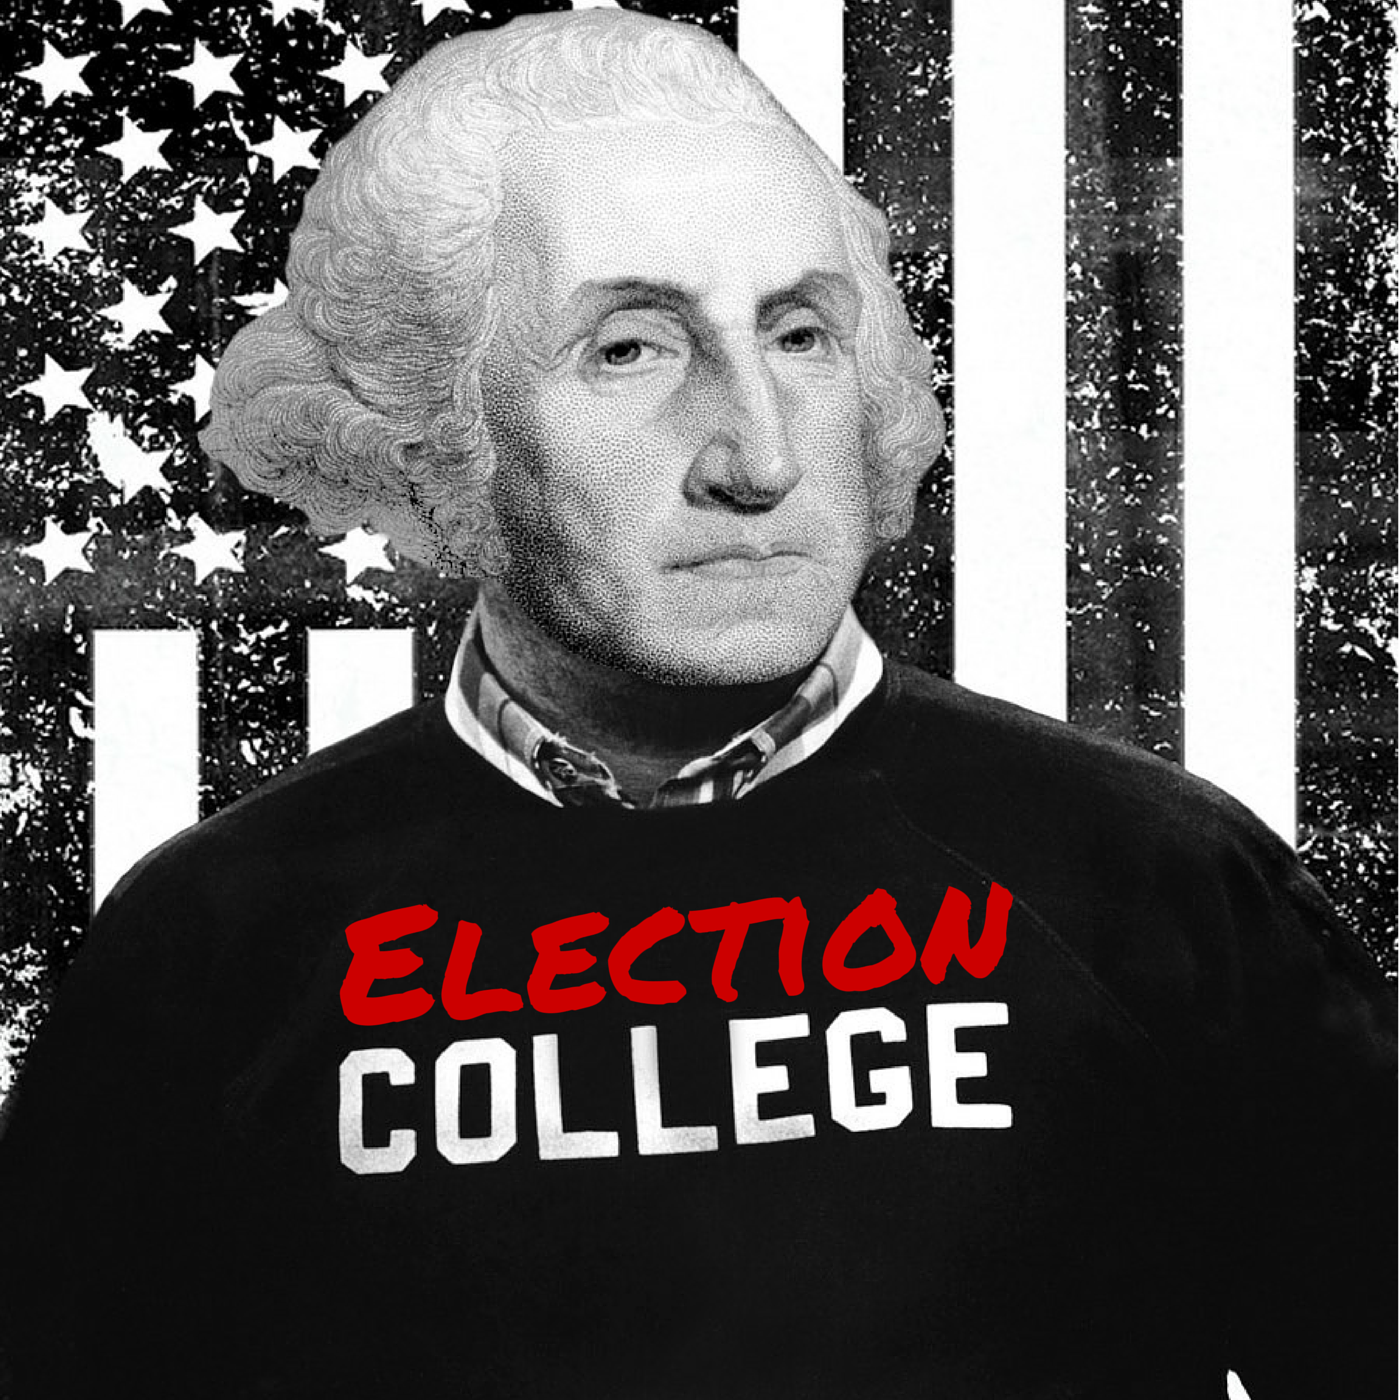 Replay - The First First Lady - Dolley Madison | Episode #079 | Election College: United States Presidential Election History